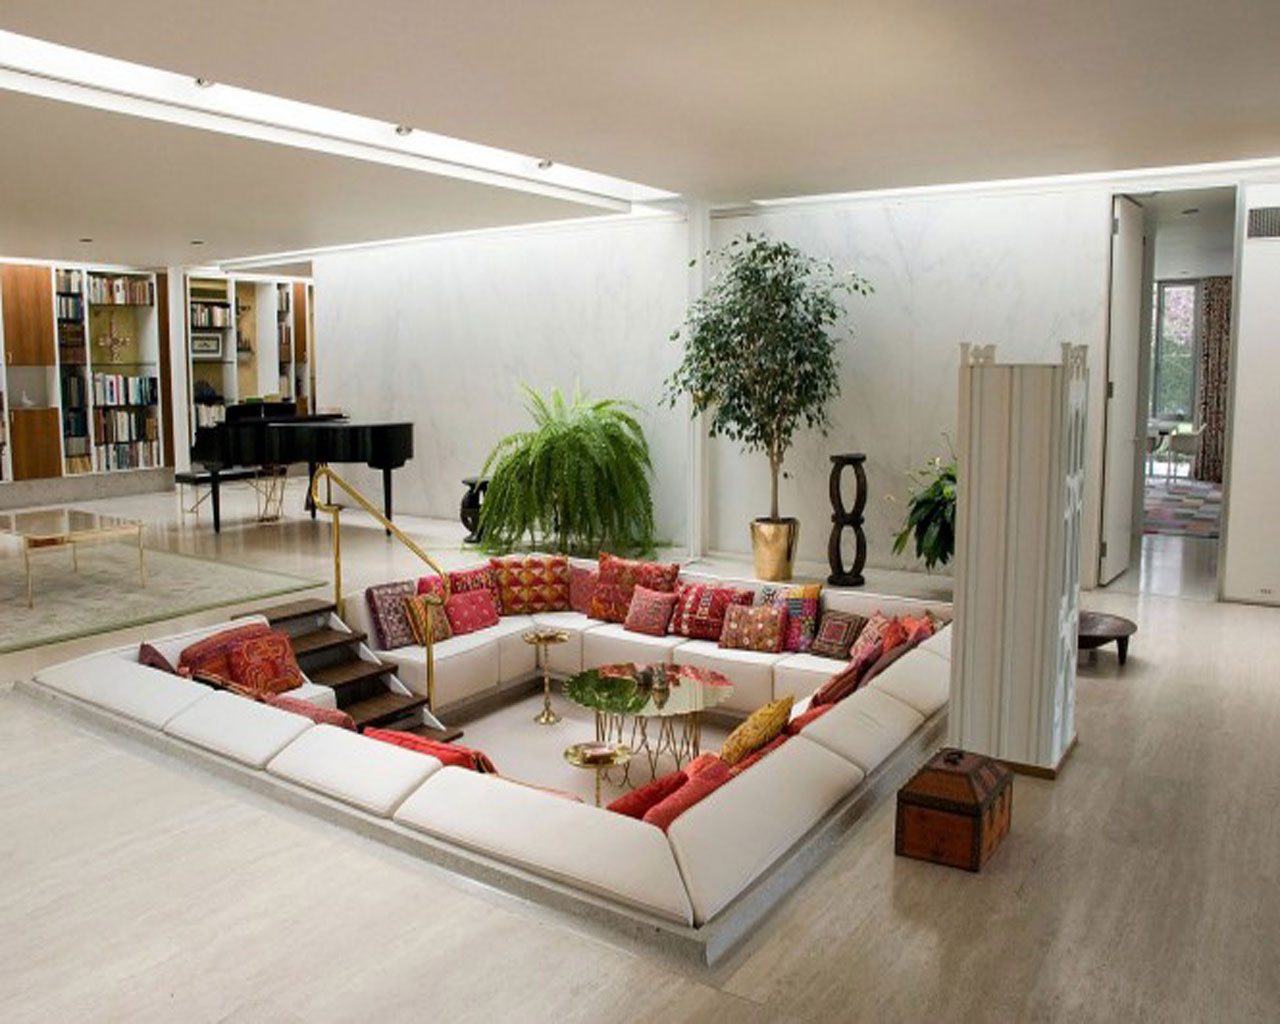 How can i apply feng shui principles to decorate my living for How decorate family room